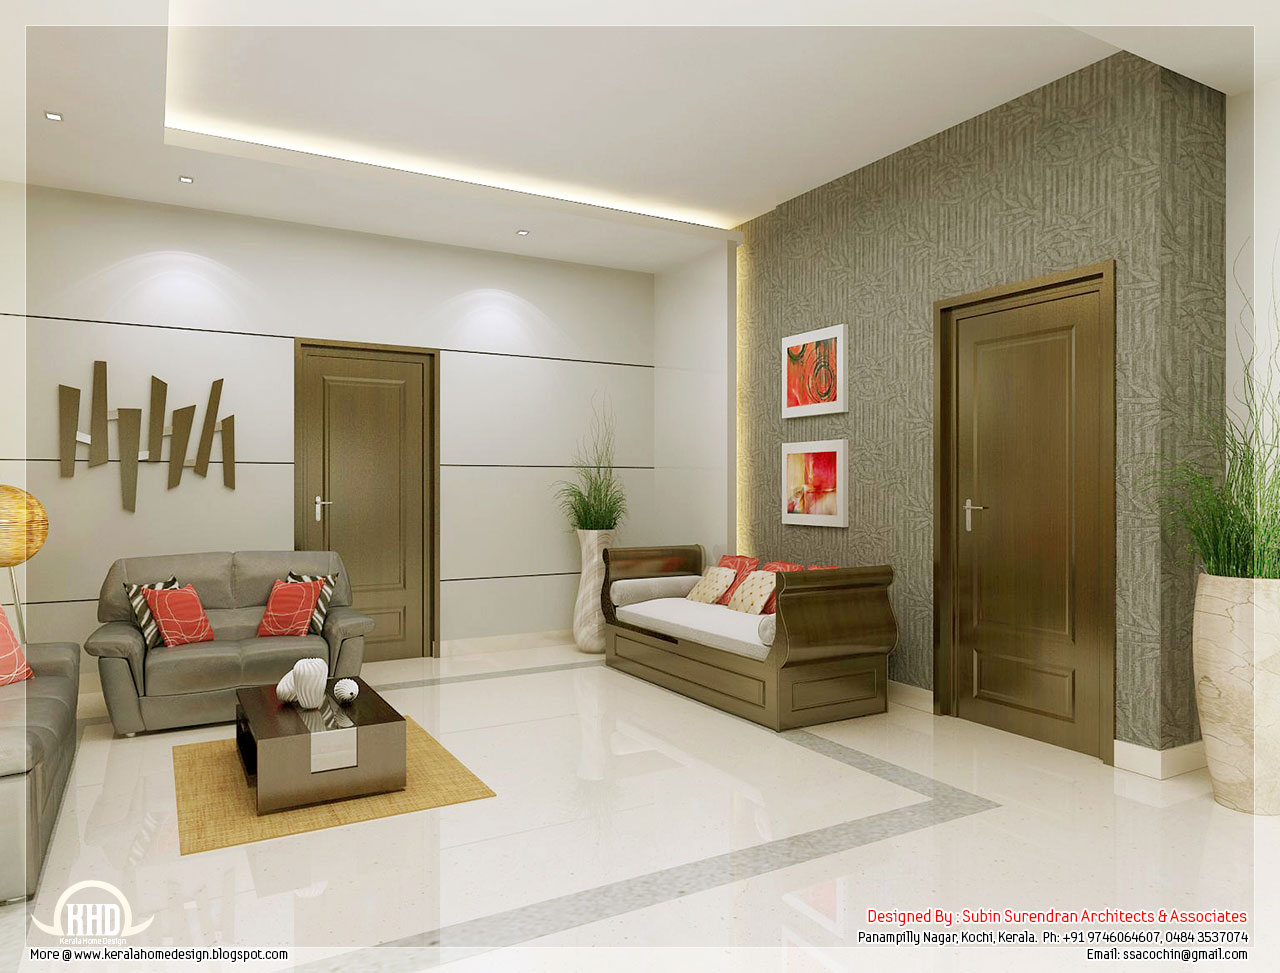 Awesome 3d interior renderings kerala home design and Living room interior design photo gallery